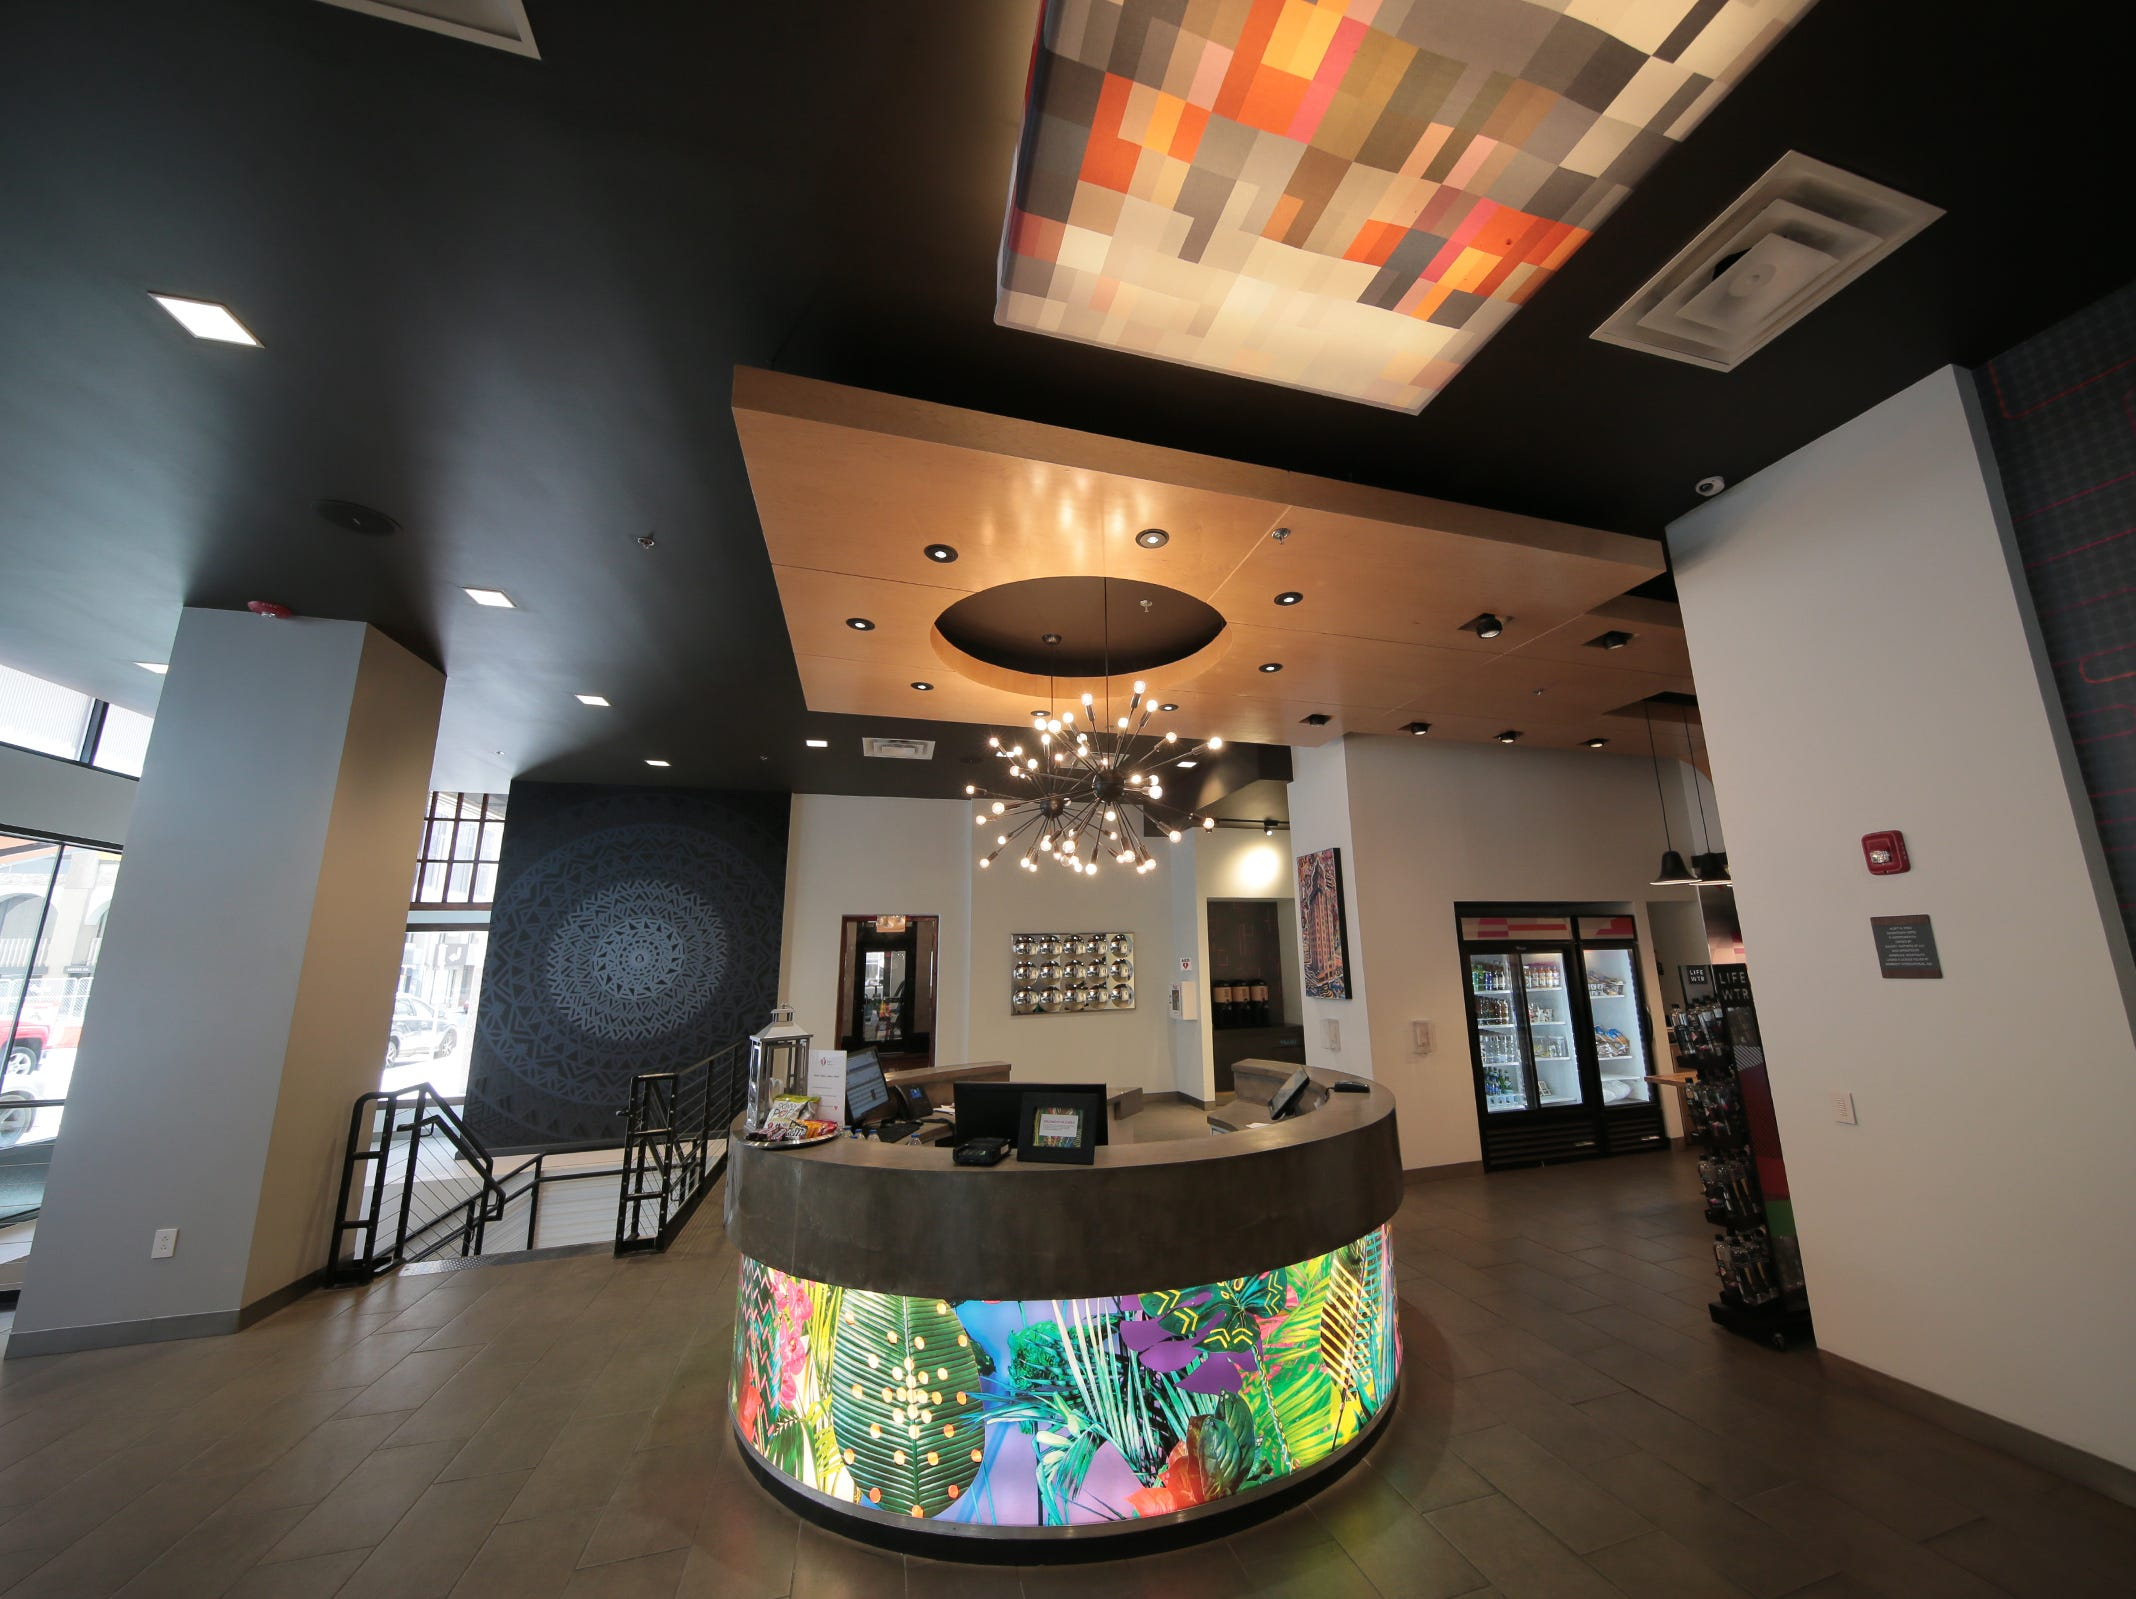 The lobby of the Stanton House boutique hotel in Downtown El Paso is shown.